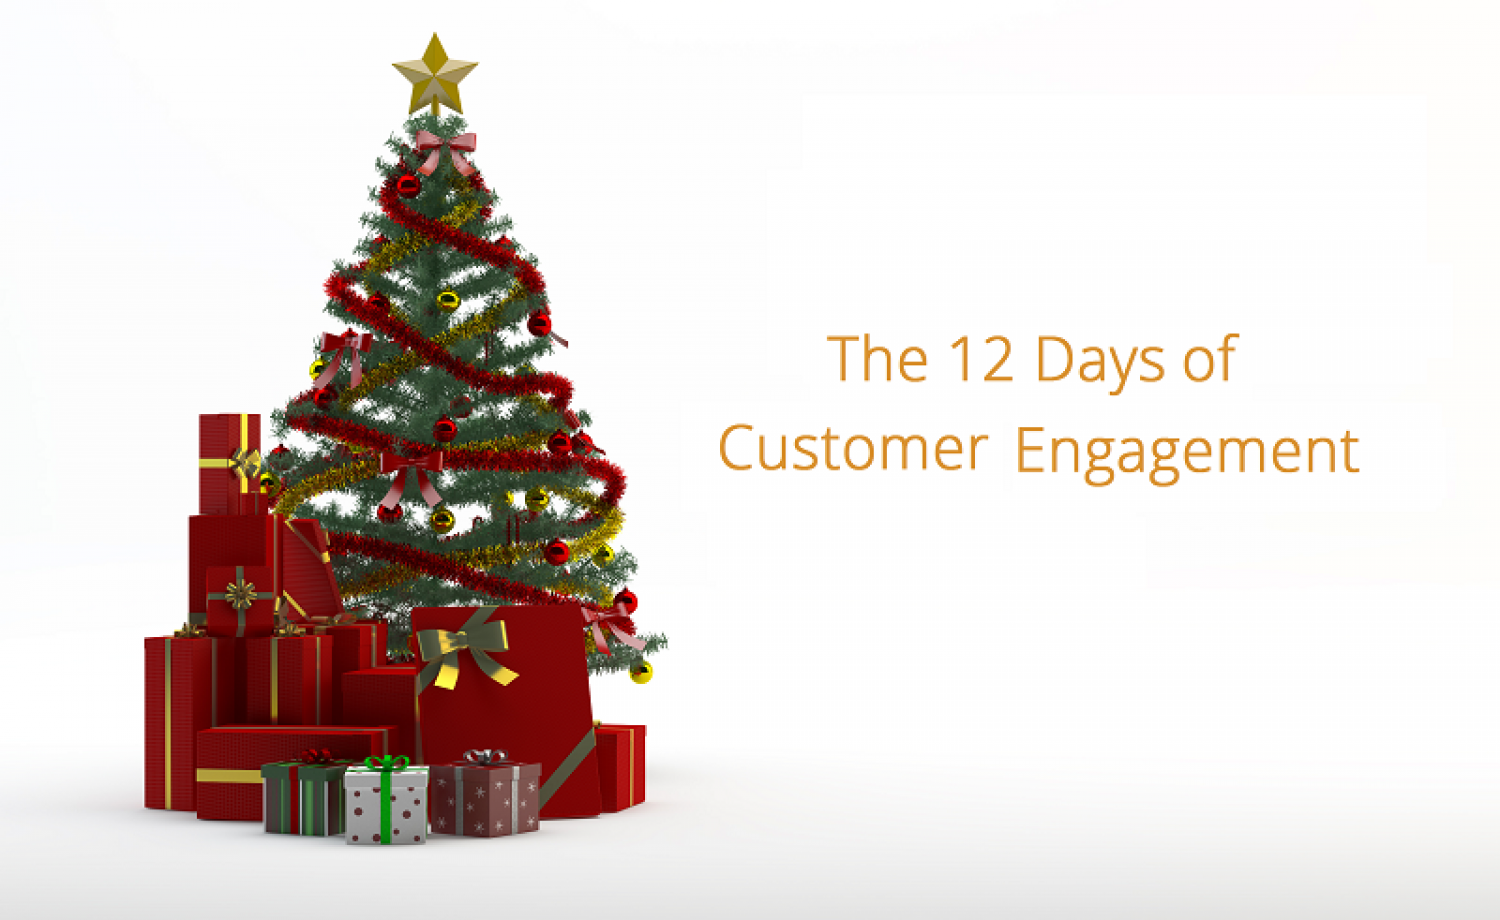 The 12 days of customer engagement Infographic